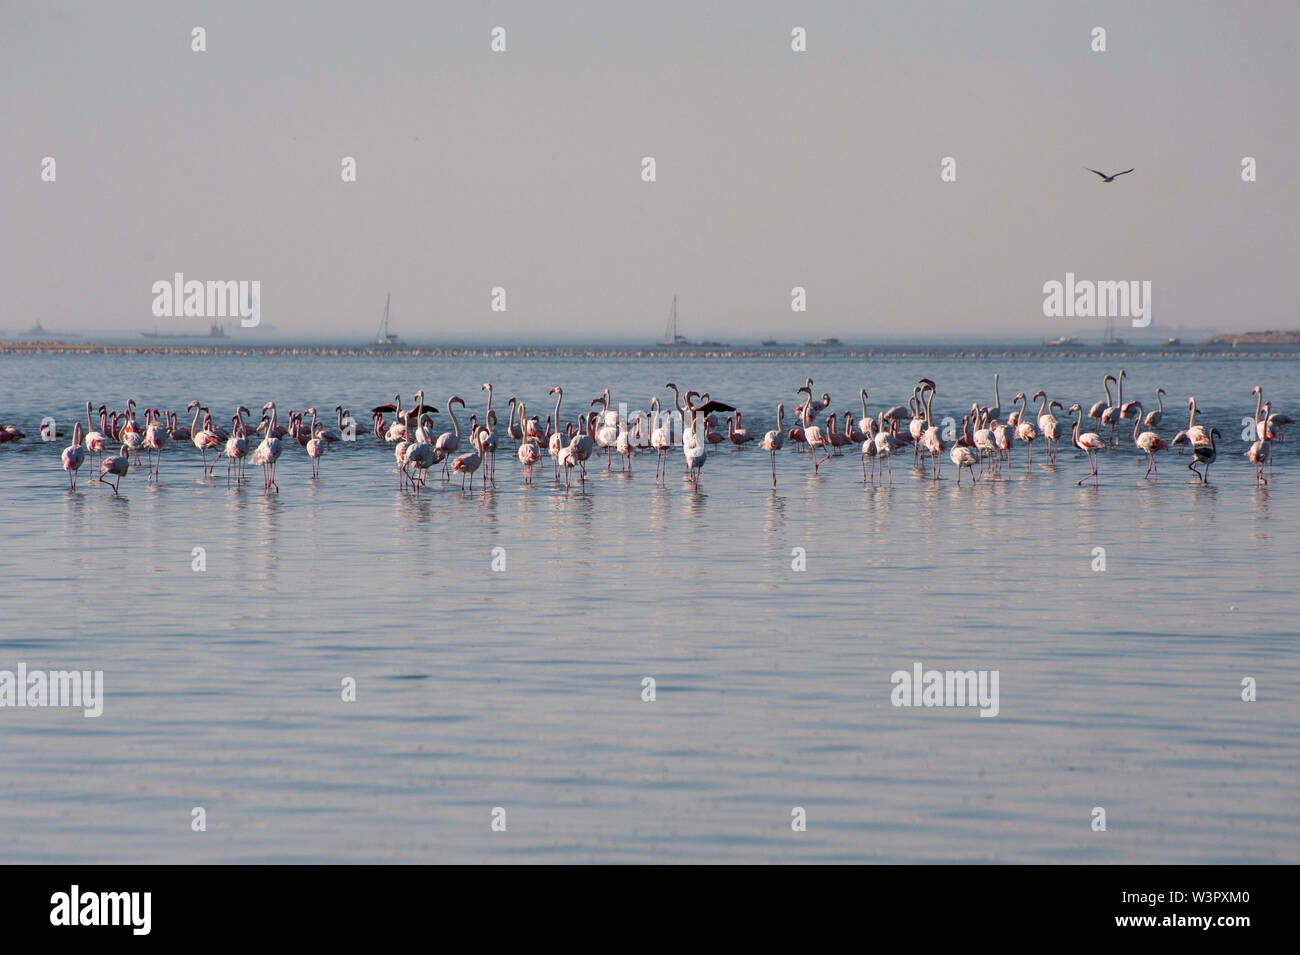 Flock of Lesser Flamingoes (Phoeniconaias minor) in Walvis Bay, Namibia Stock Photo